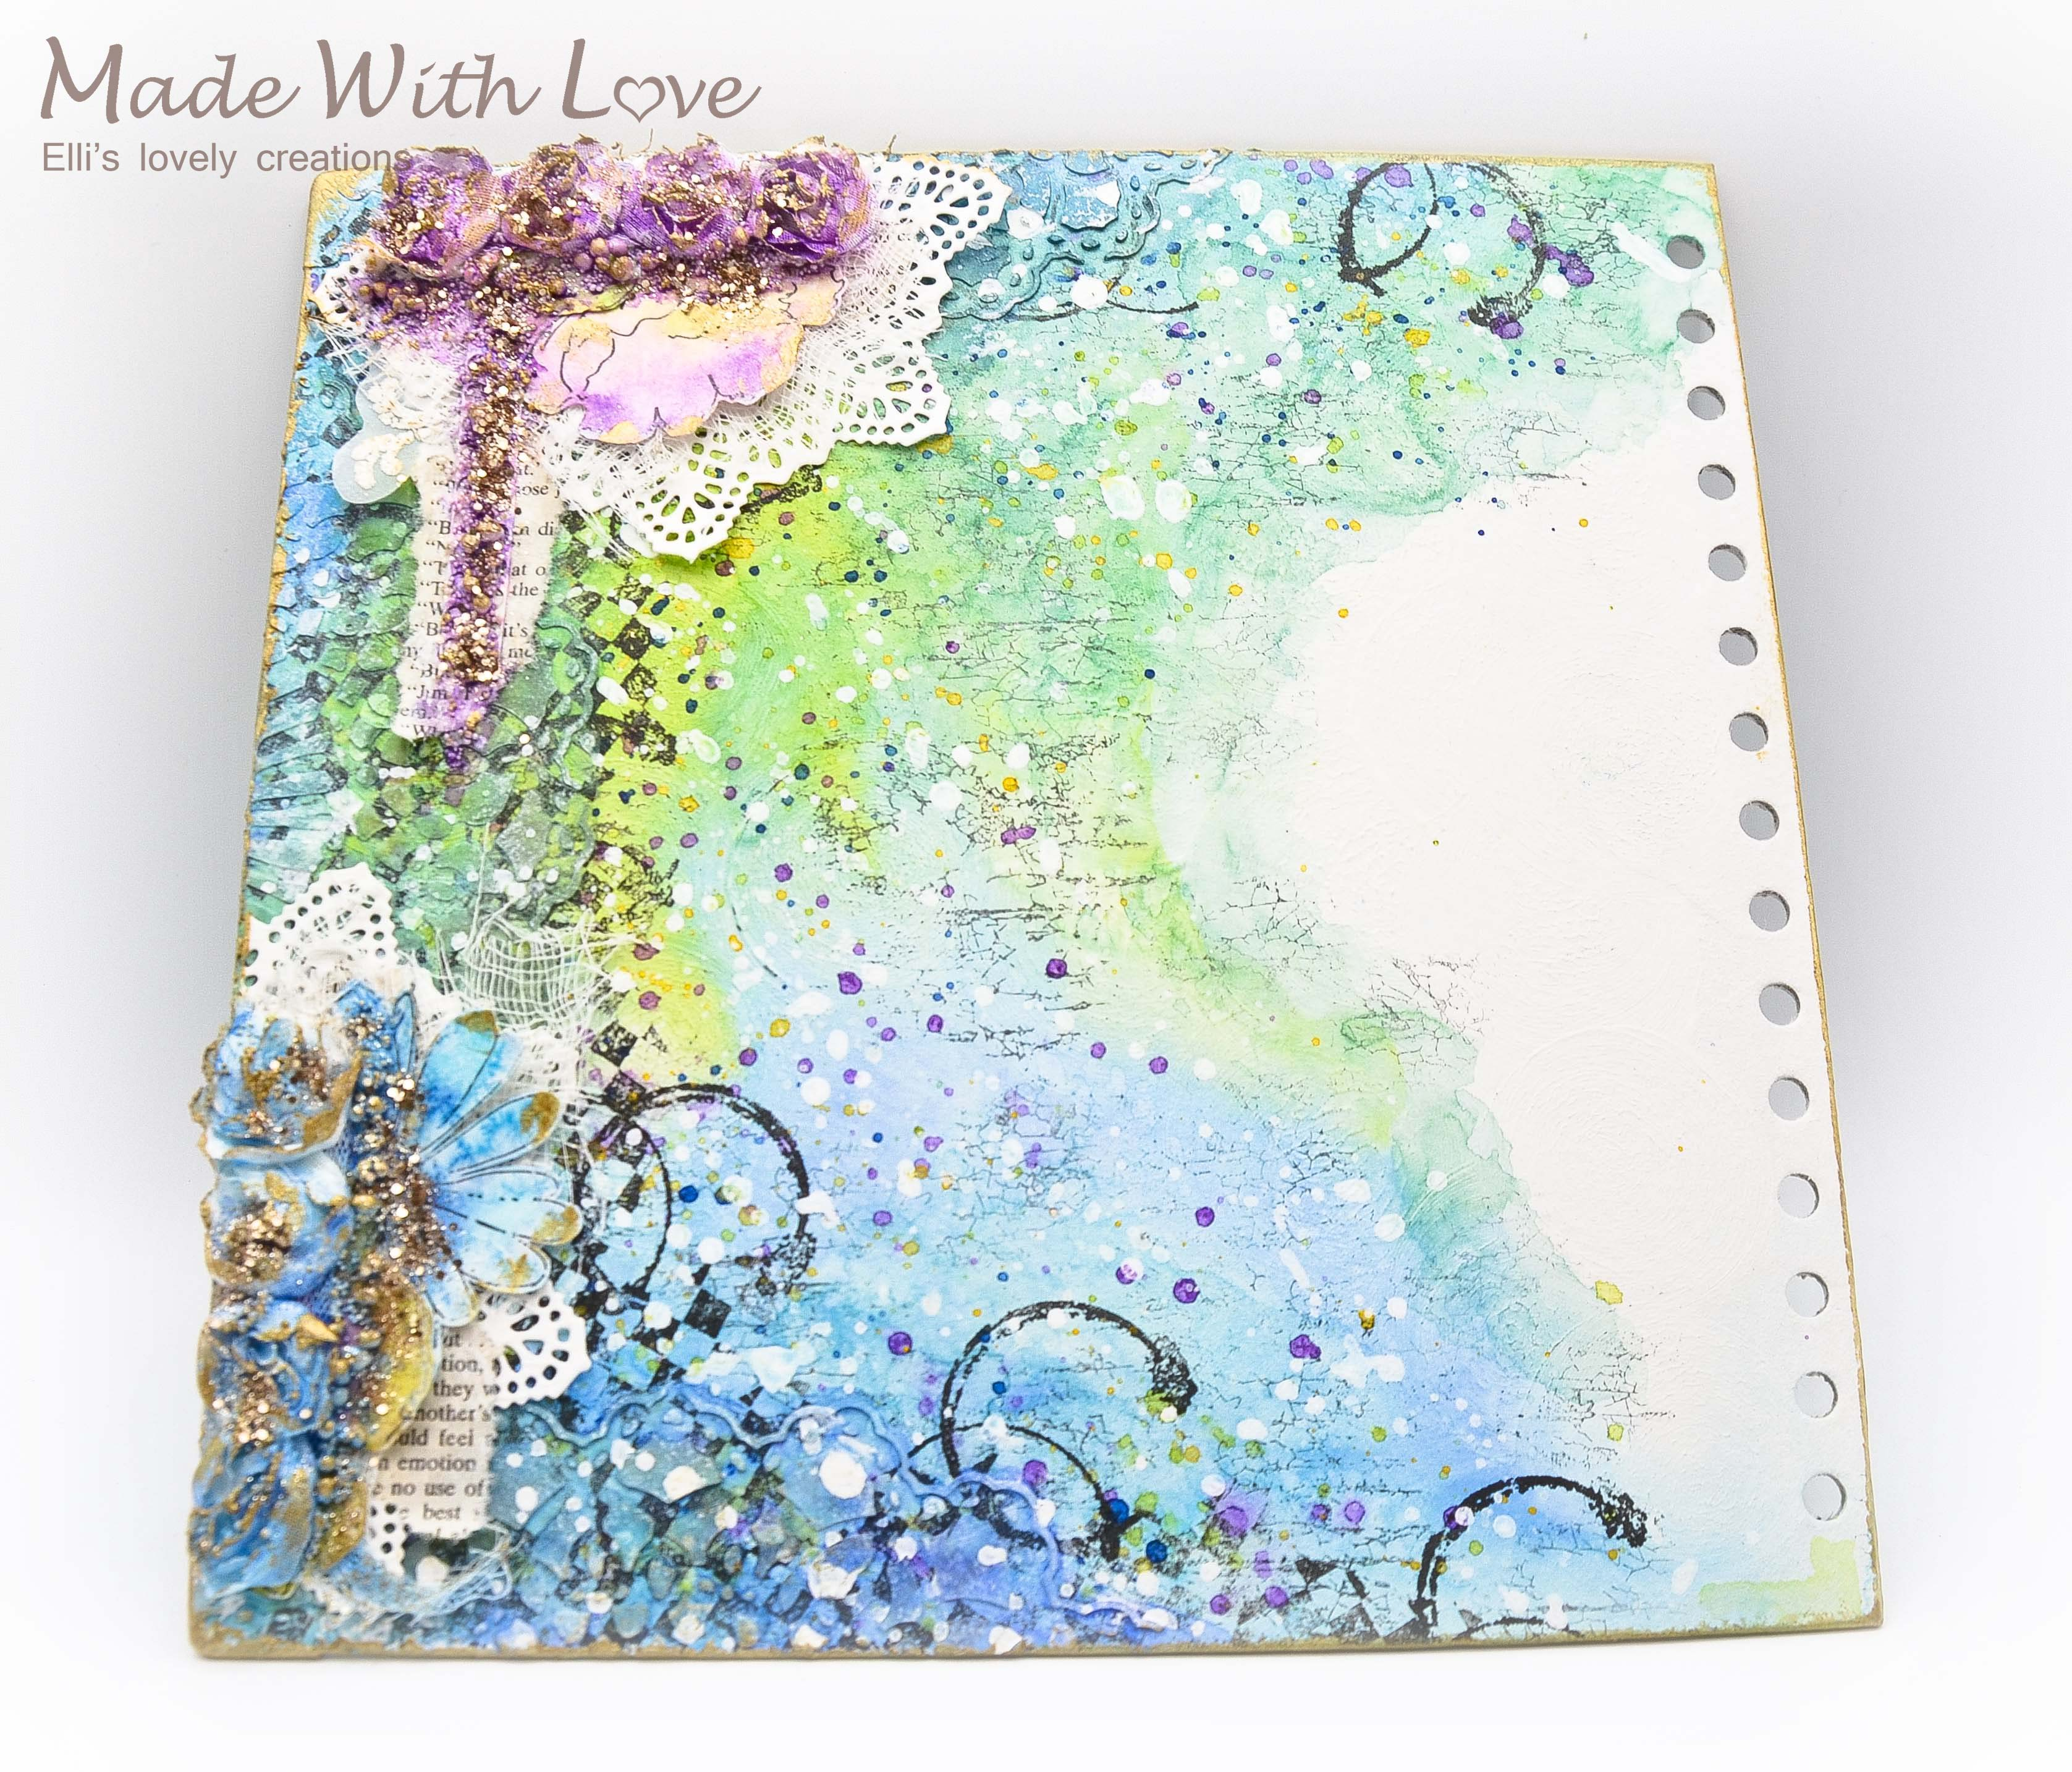 Mixed Media Summer Garden Wedding Album Cover Enjoy 0050